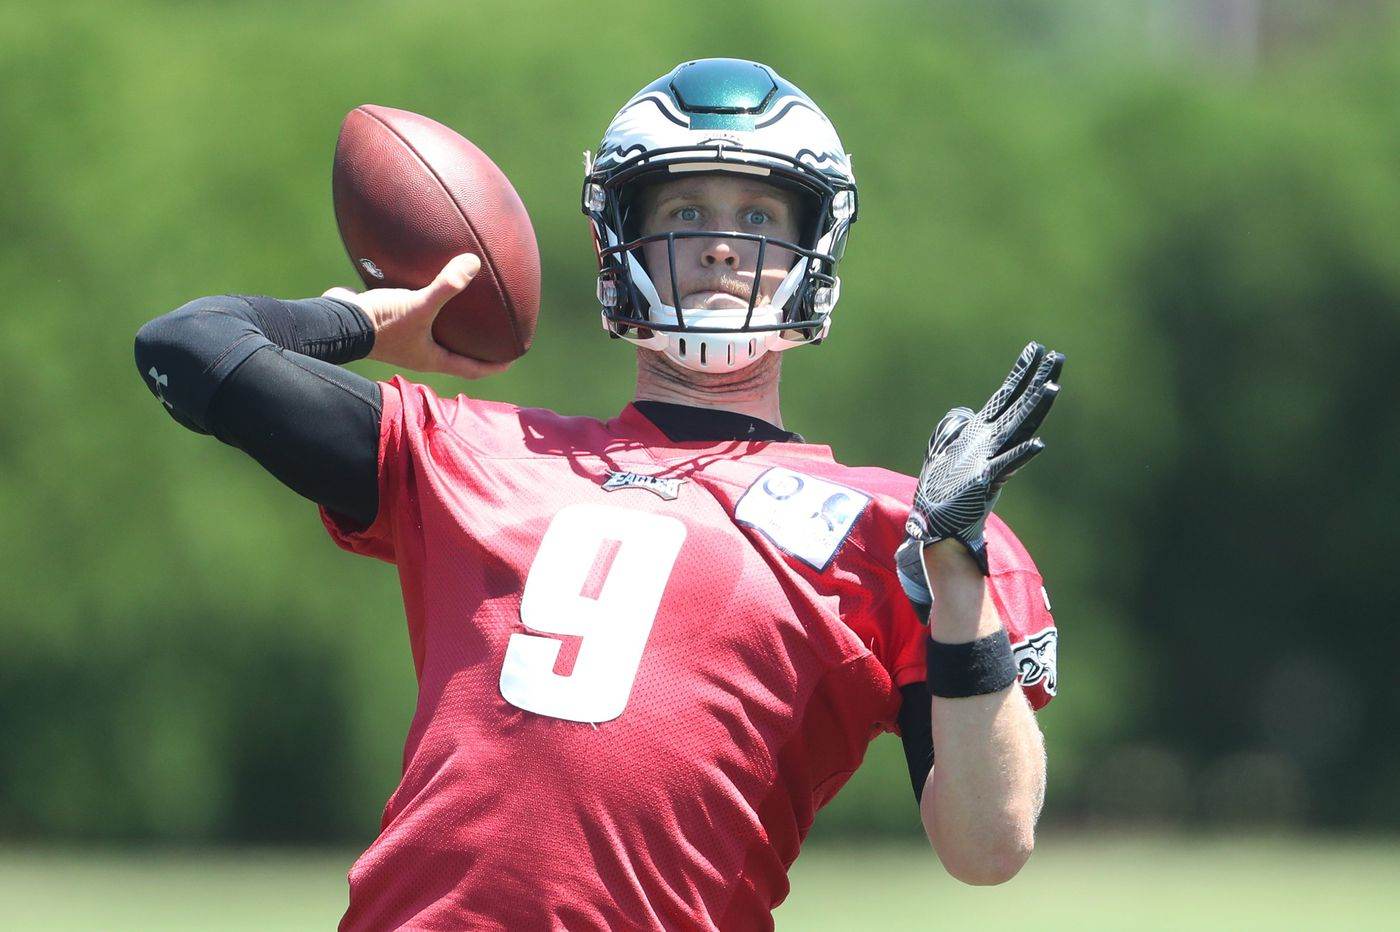 Eagles practice observations: Sidney Jones held back with 'soreness;' Carson Wentz dials it up; Darren Sproles takes mental reps